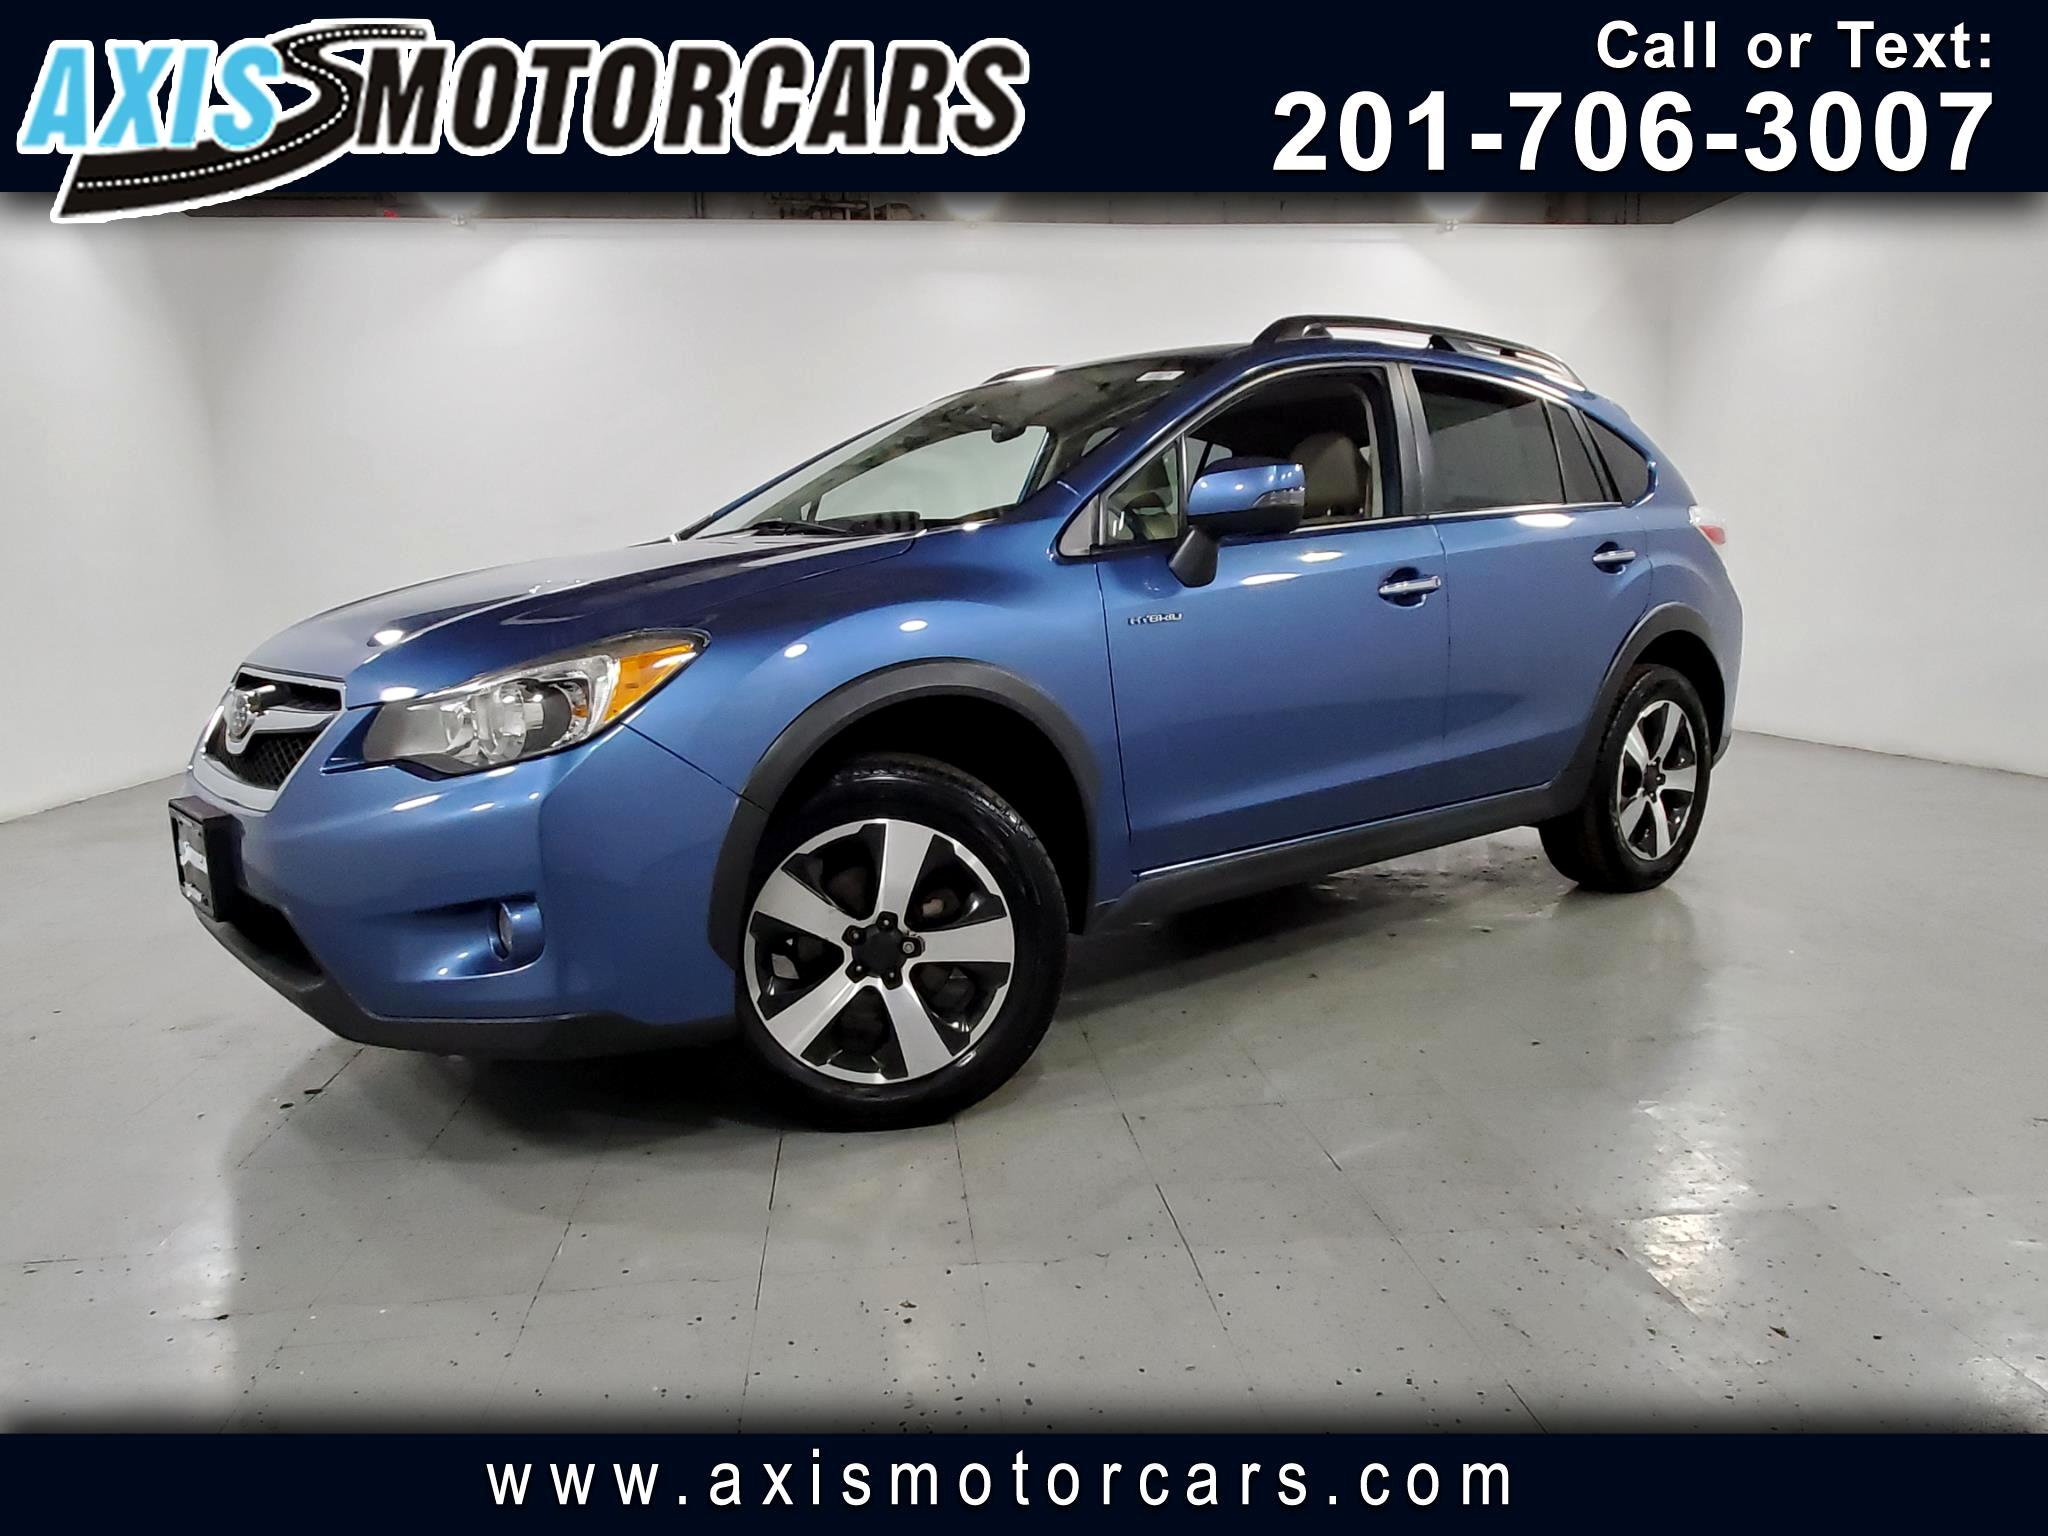 2014 Subaru XV Crosstrek Hybrid w/Leather Backup Camera